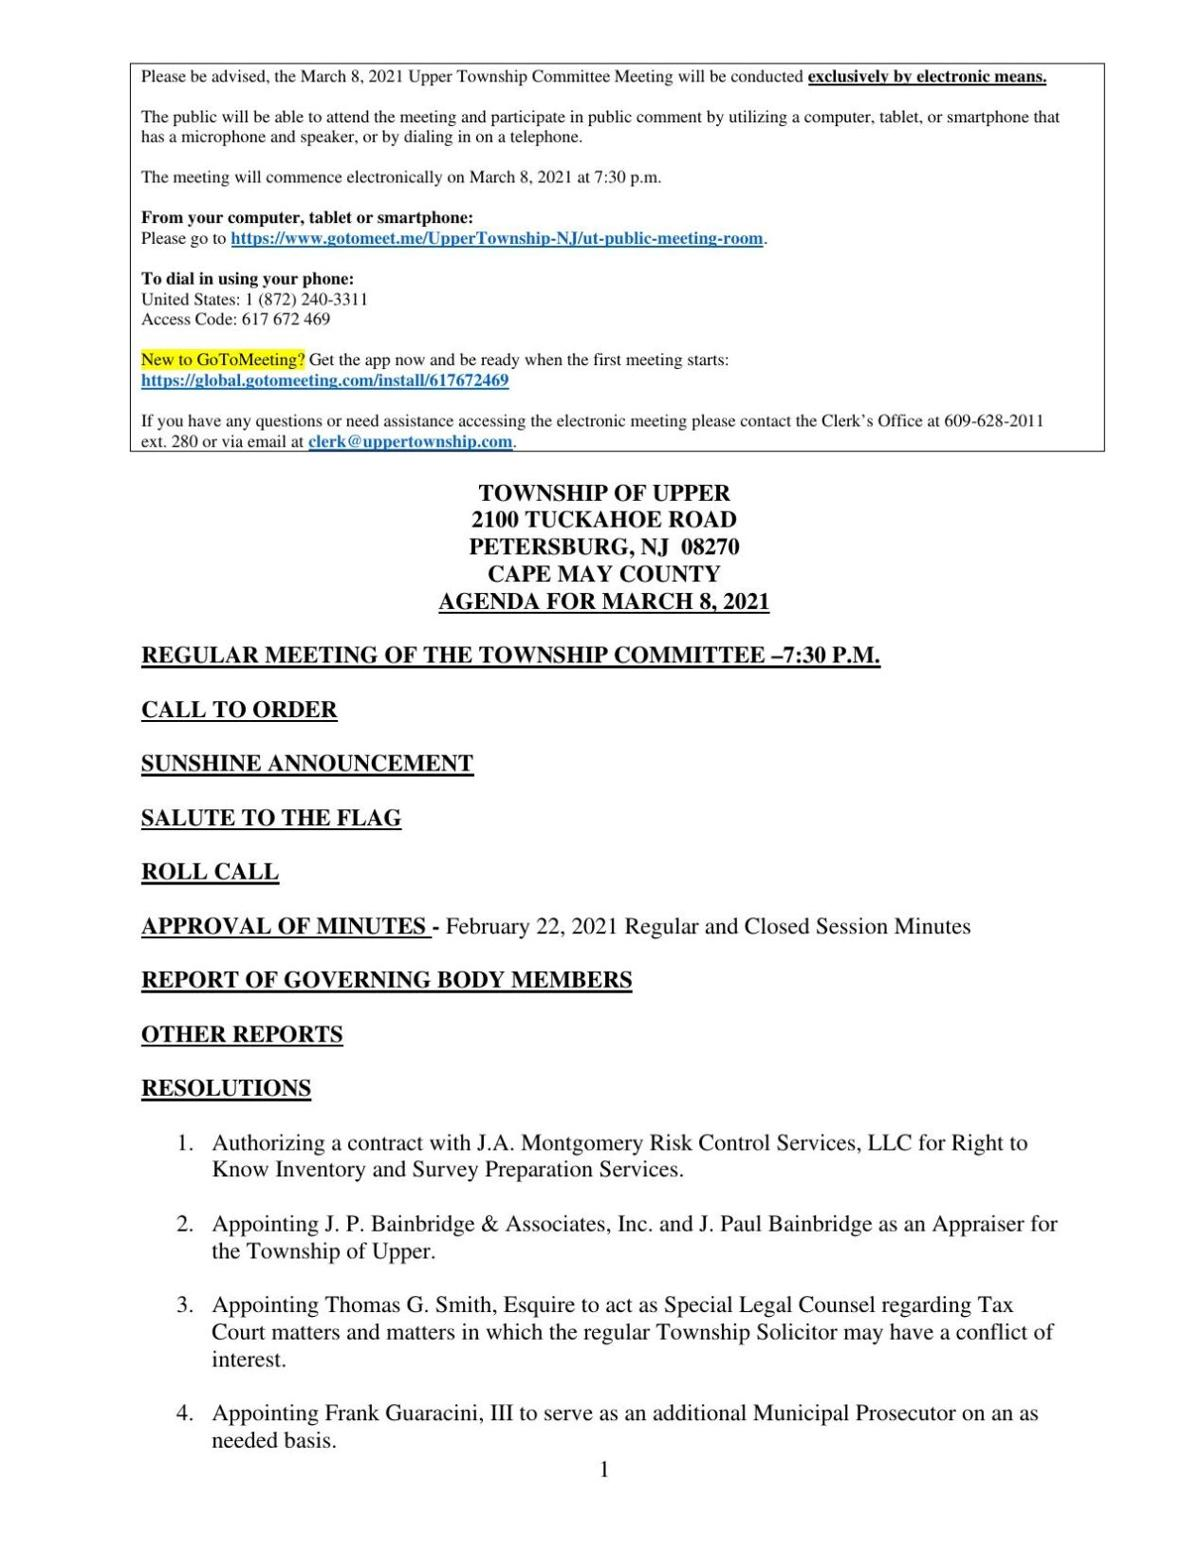 Upper Township Committee Agenda March 8, 2021